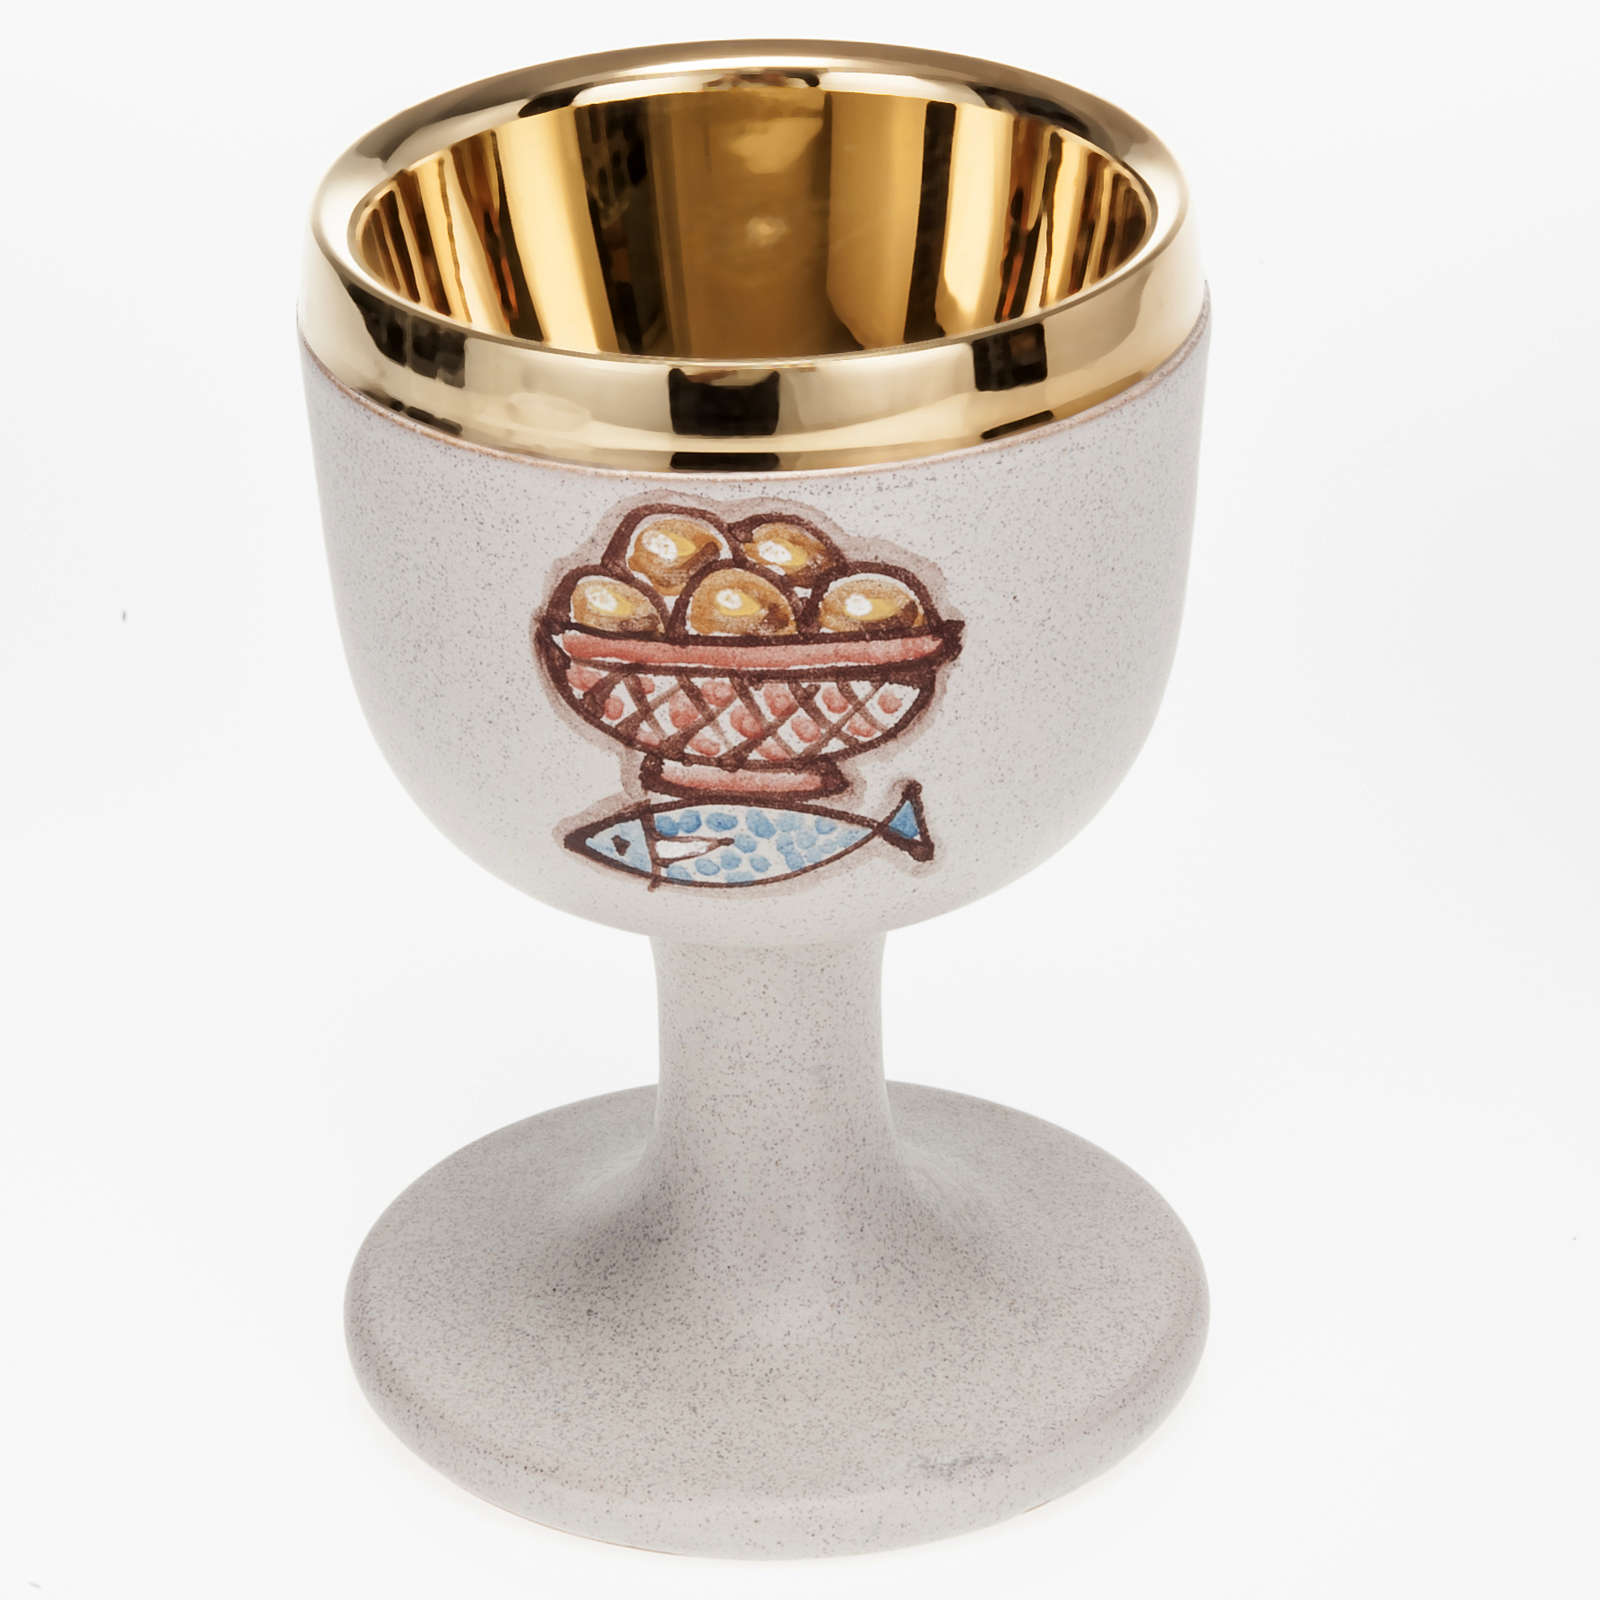 Beige ceramic communion chalice with cup 4